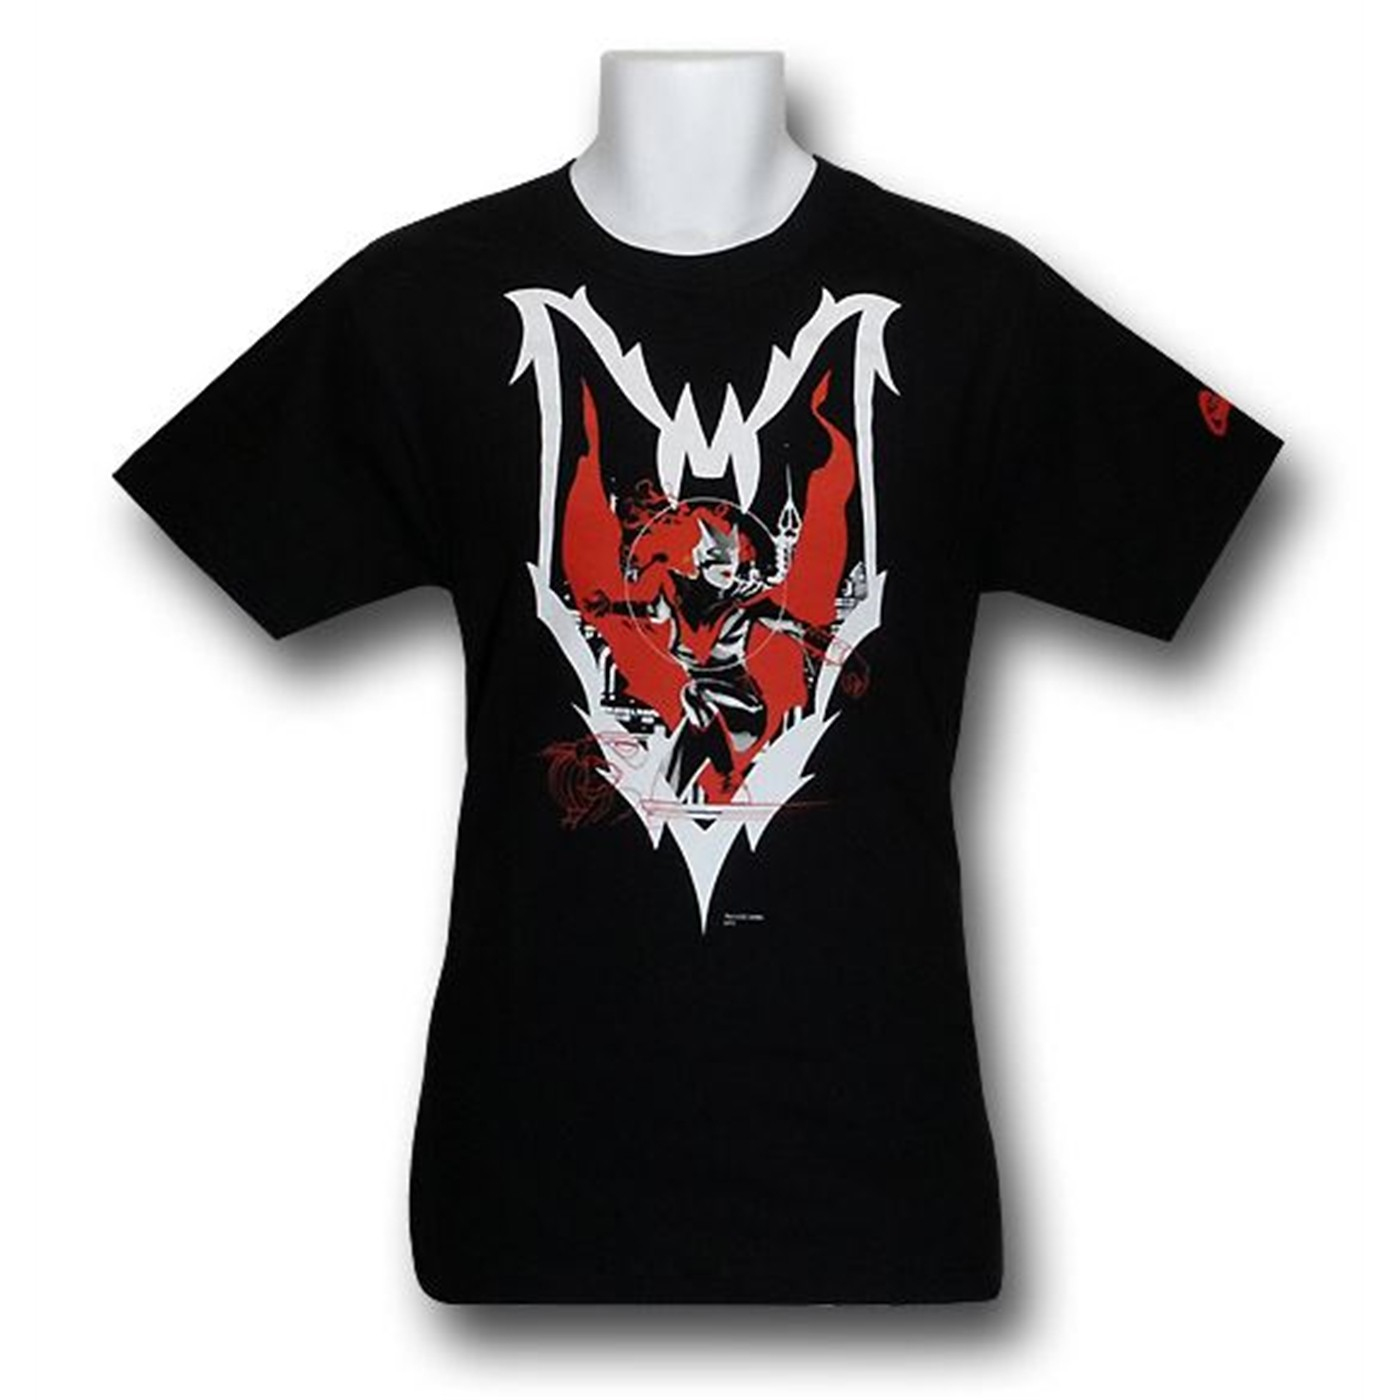 Batwoman T-Shirt by J.H. Williams